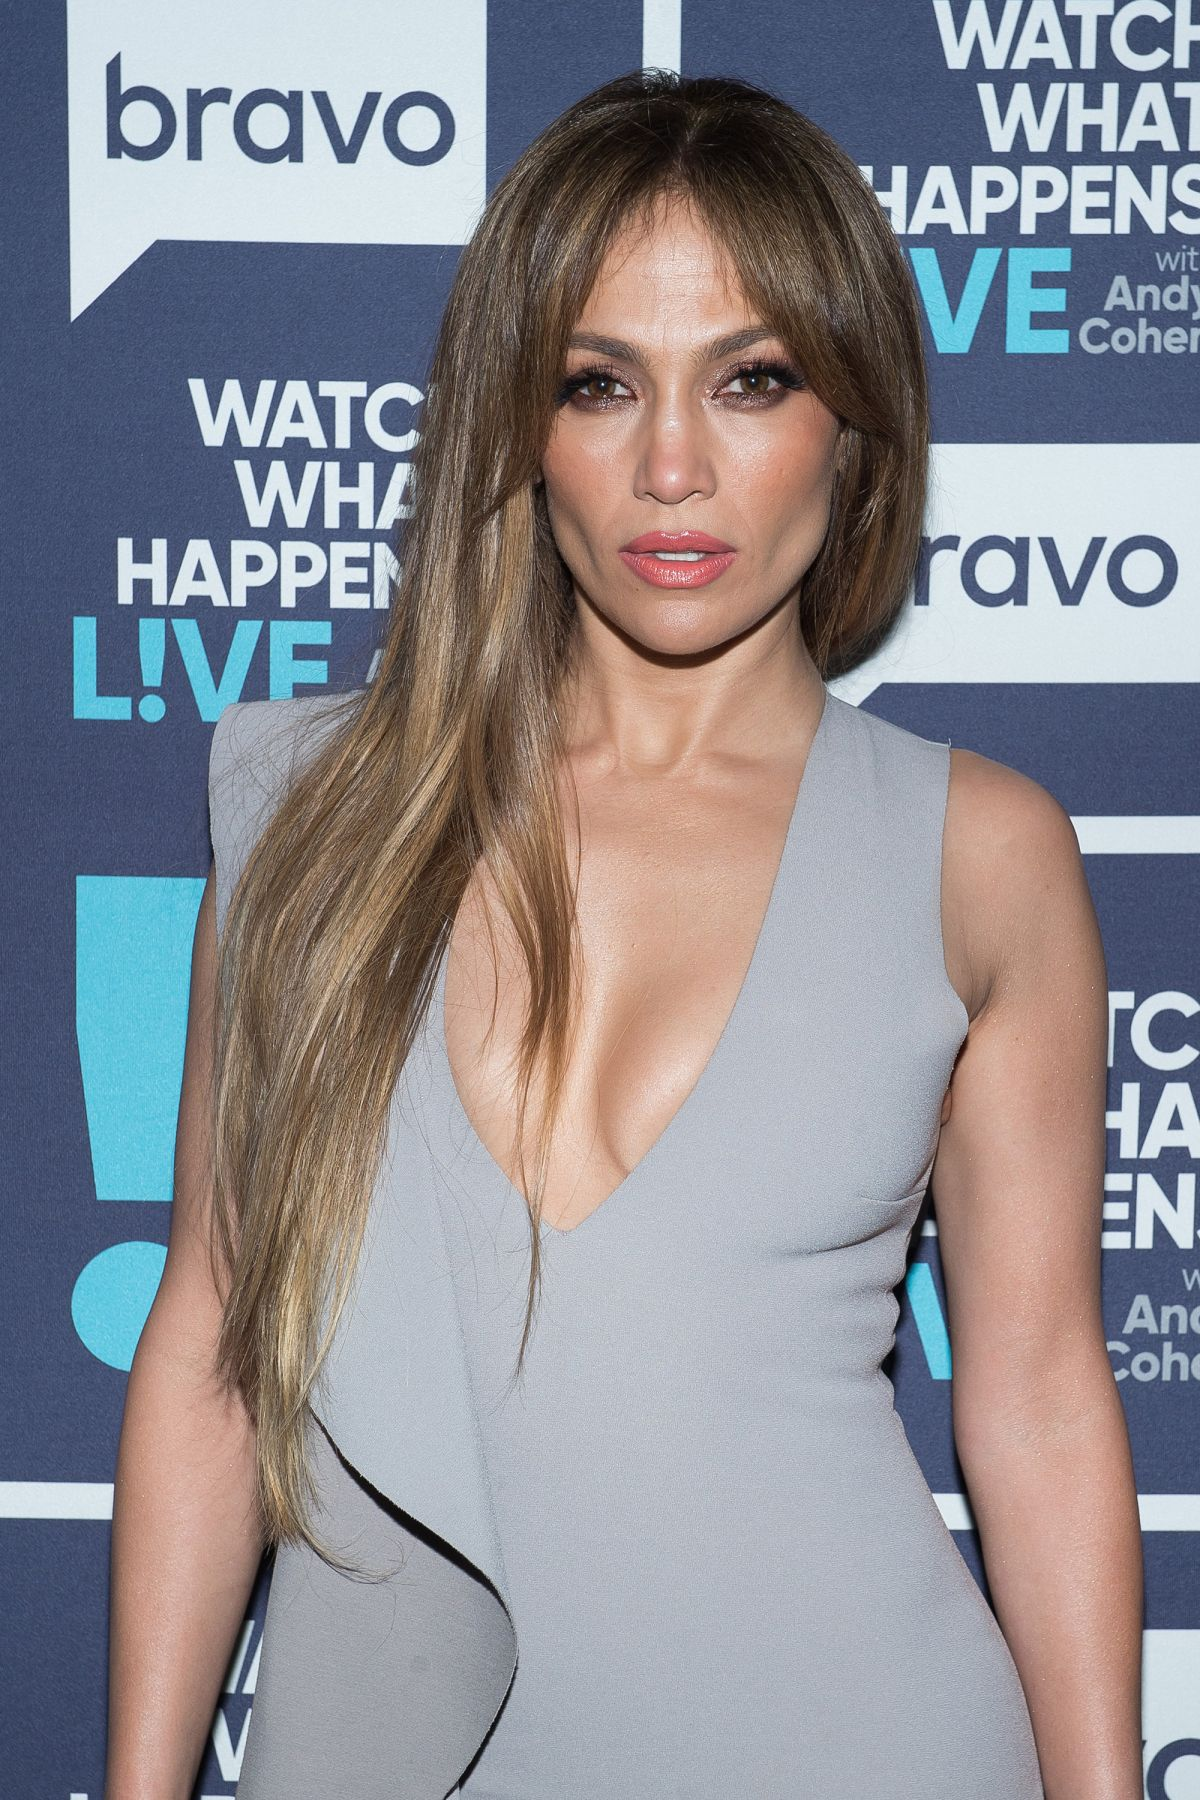 JENNIFER LOPEZ at Watch What Happens Live in New York 03/08/2017